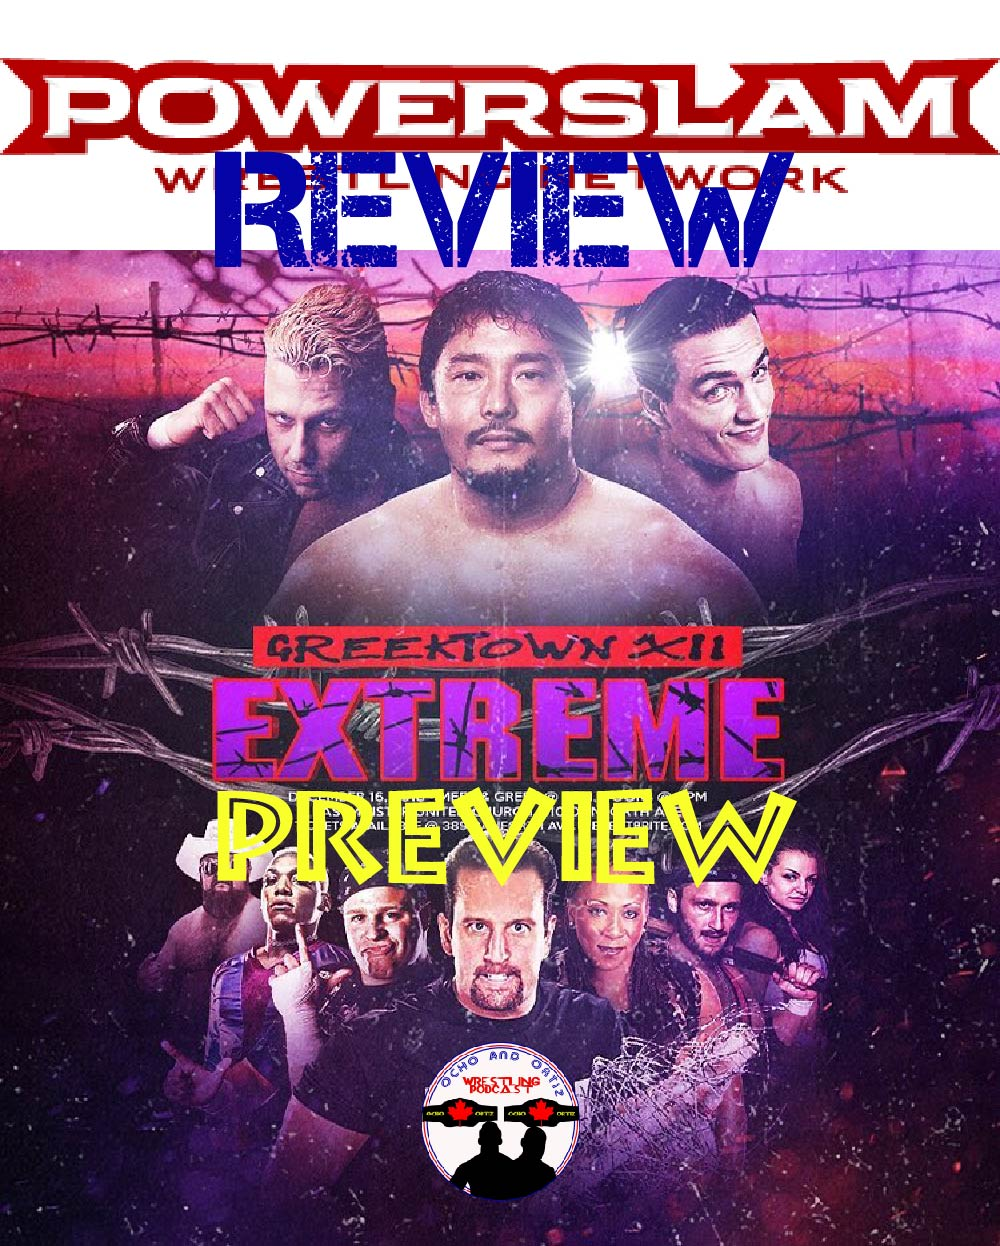 Powerslam Review and Greektown Preview